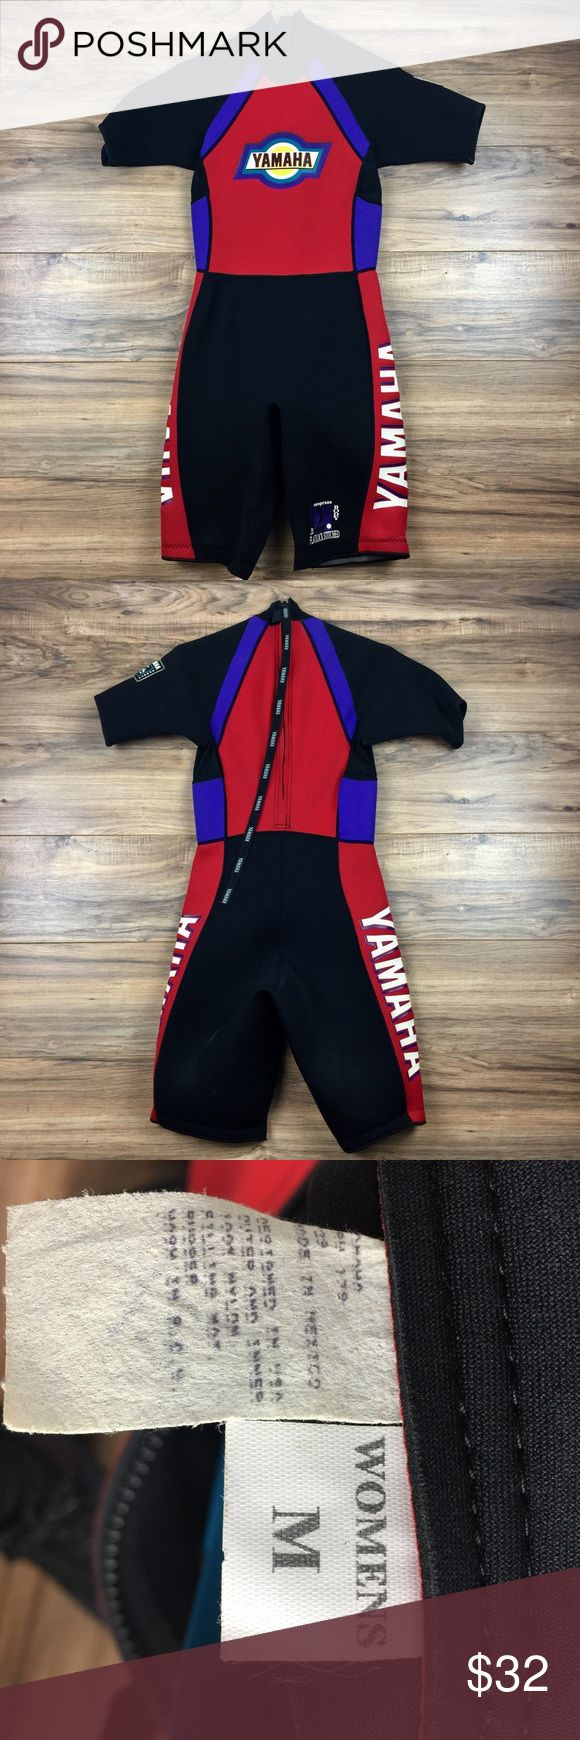 Yamaha Sports Wetsuit This is an awesome yamaha sports wetsuit with a vintage graphic and color way style. Excellent Condition all around no rips or stains Swim